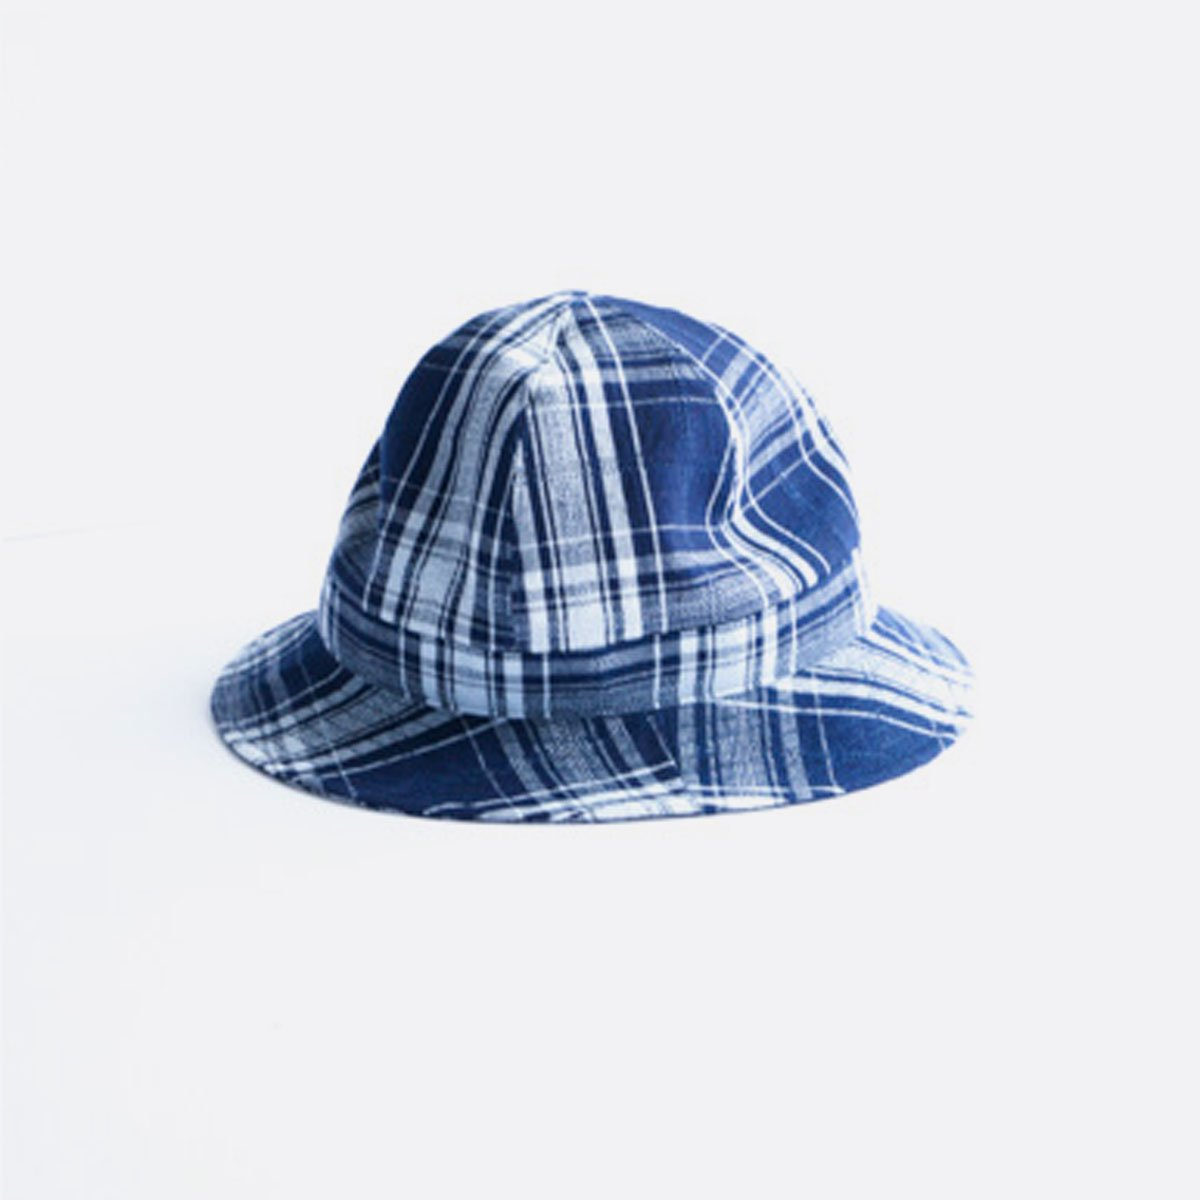 niuhans  Cotton Flannel Baseball Cap (Navy)